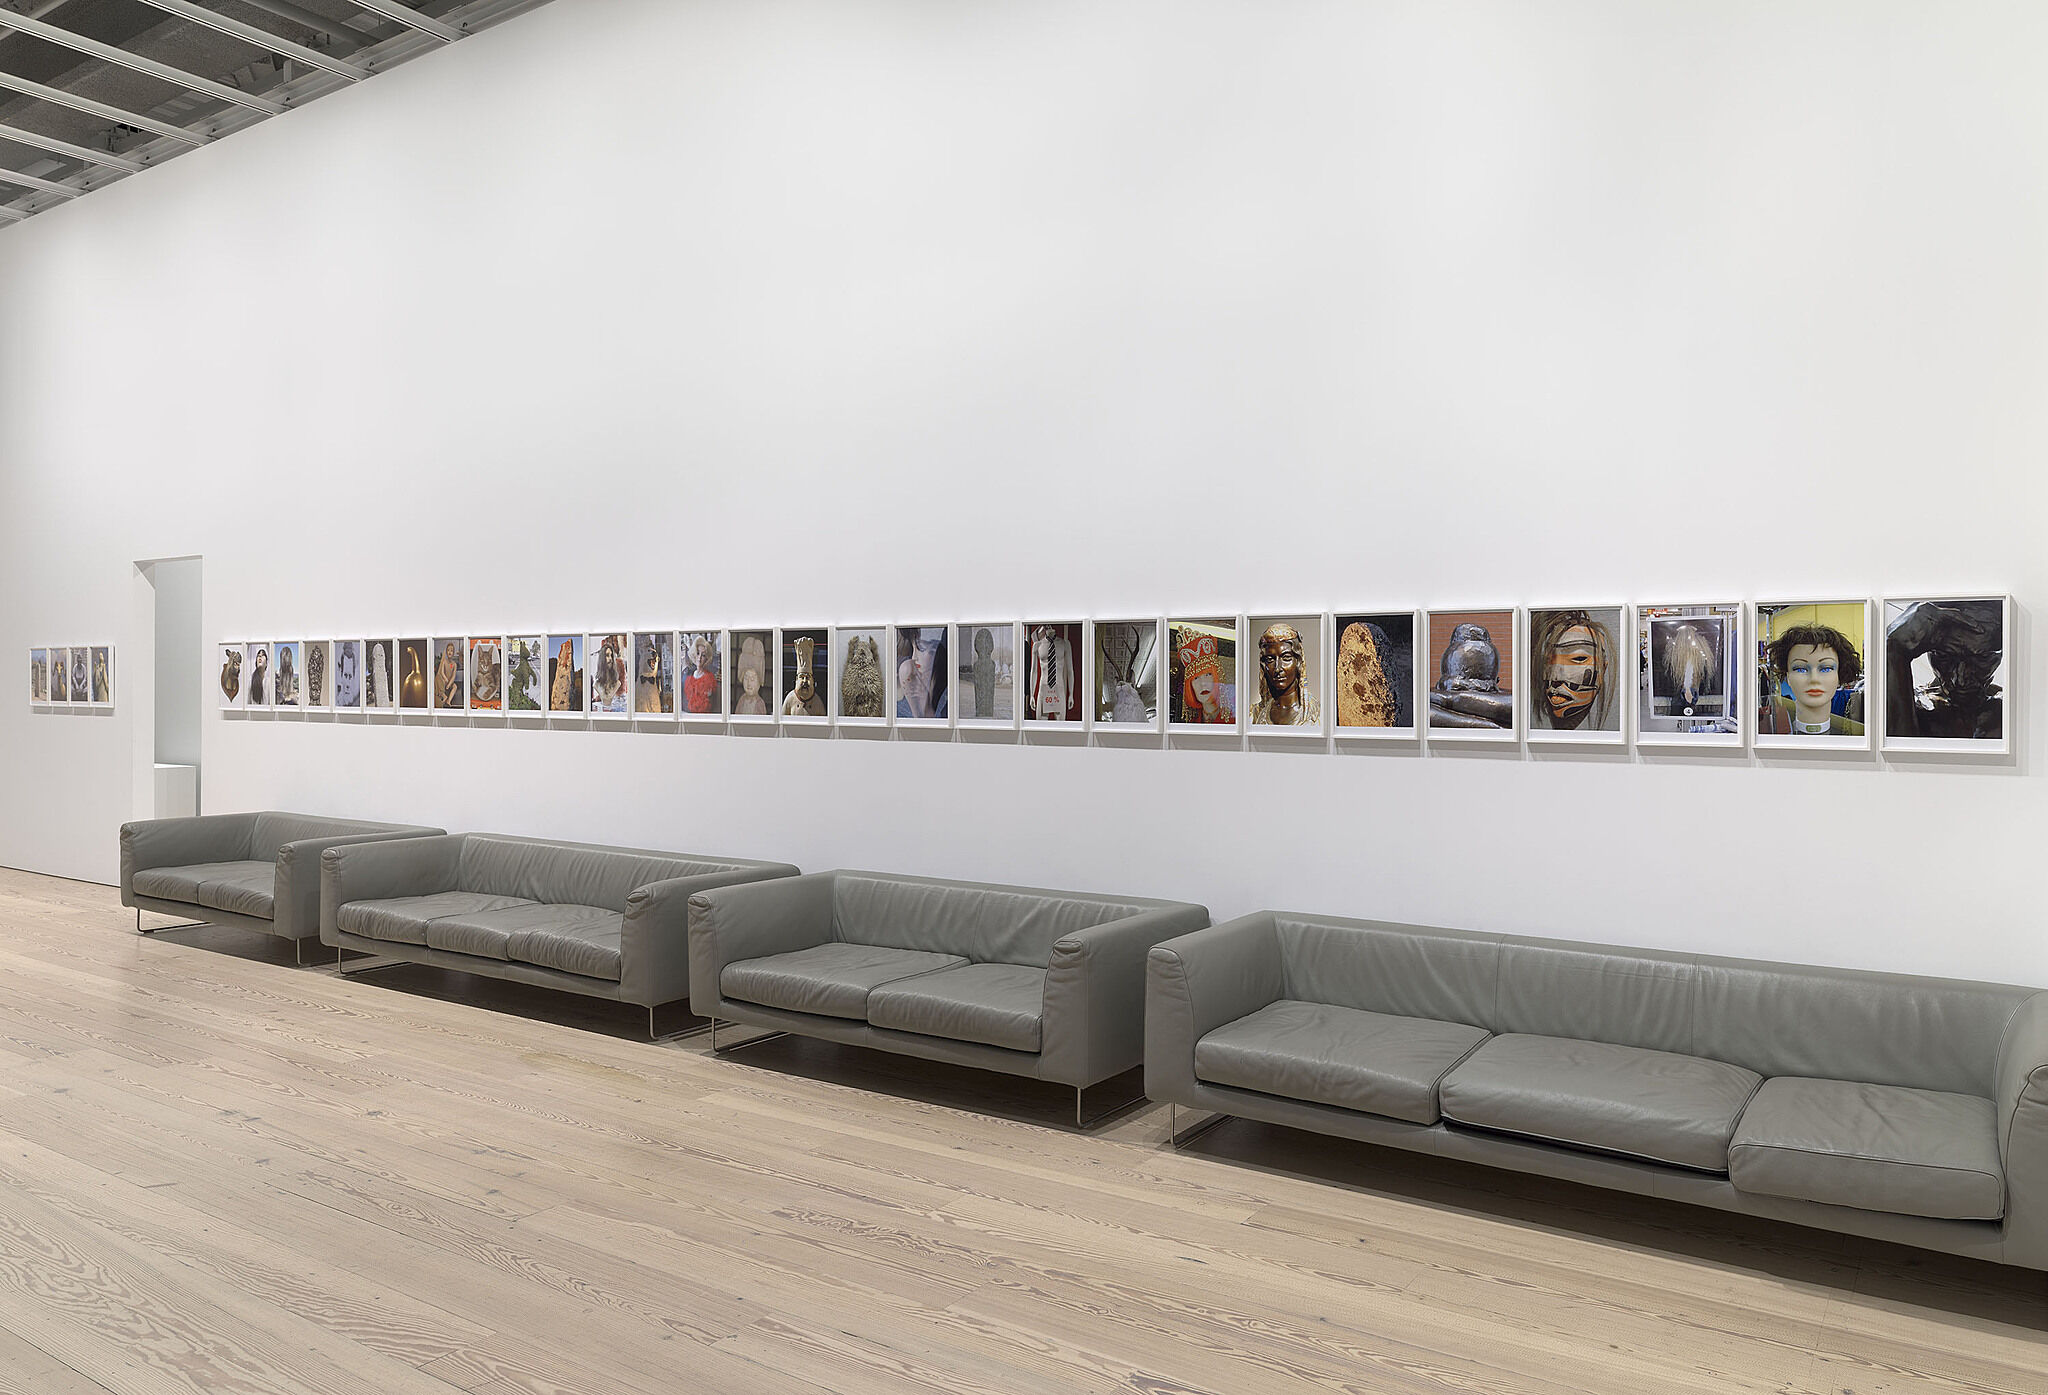 Multiple couches in a gallery with a line of small photographs on the wall.